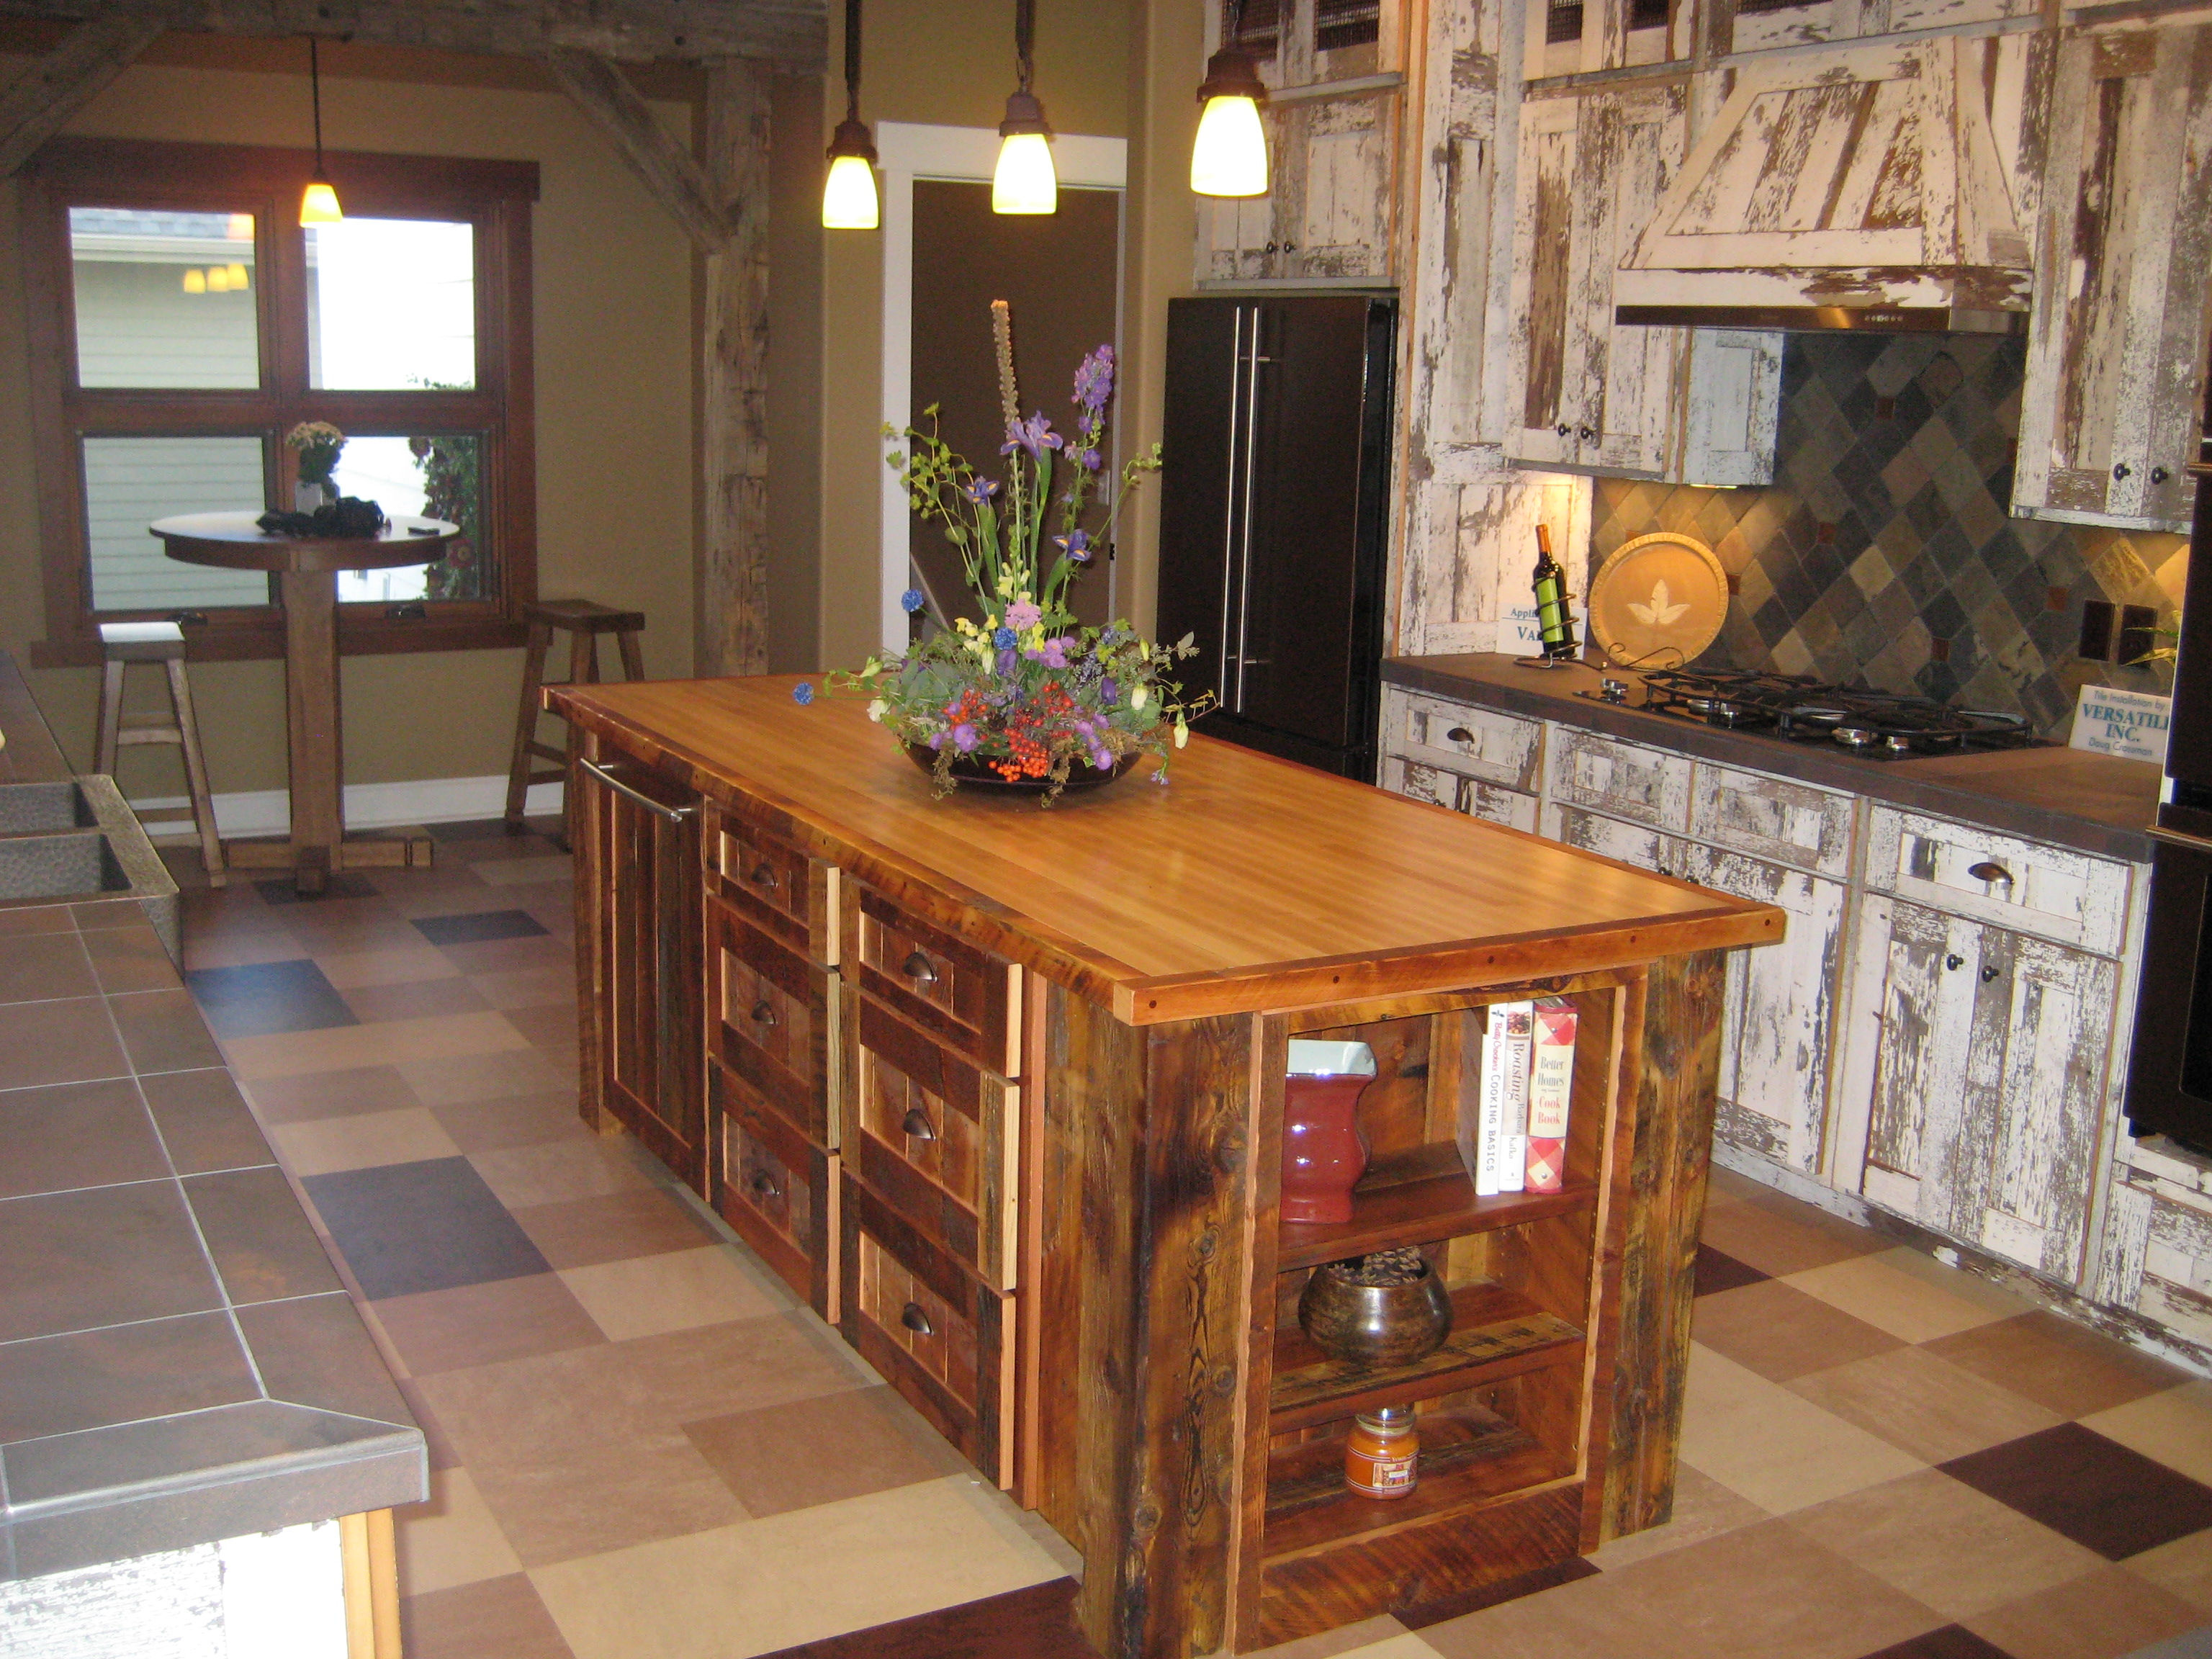 Custom cabinets made from reclaimed wood